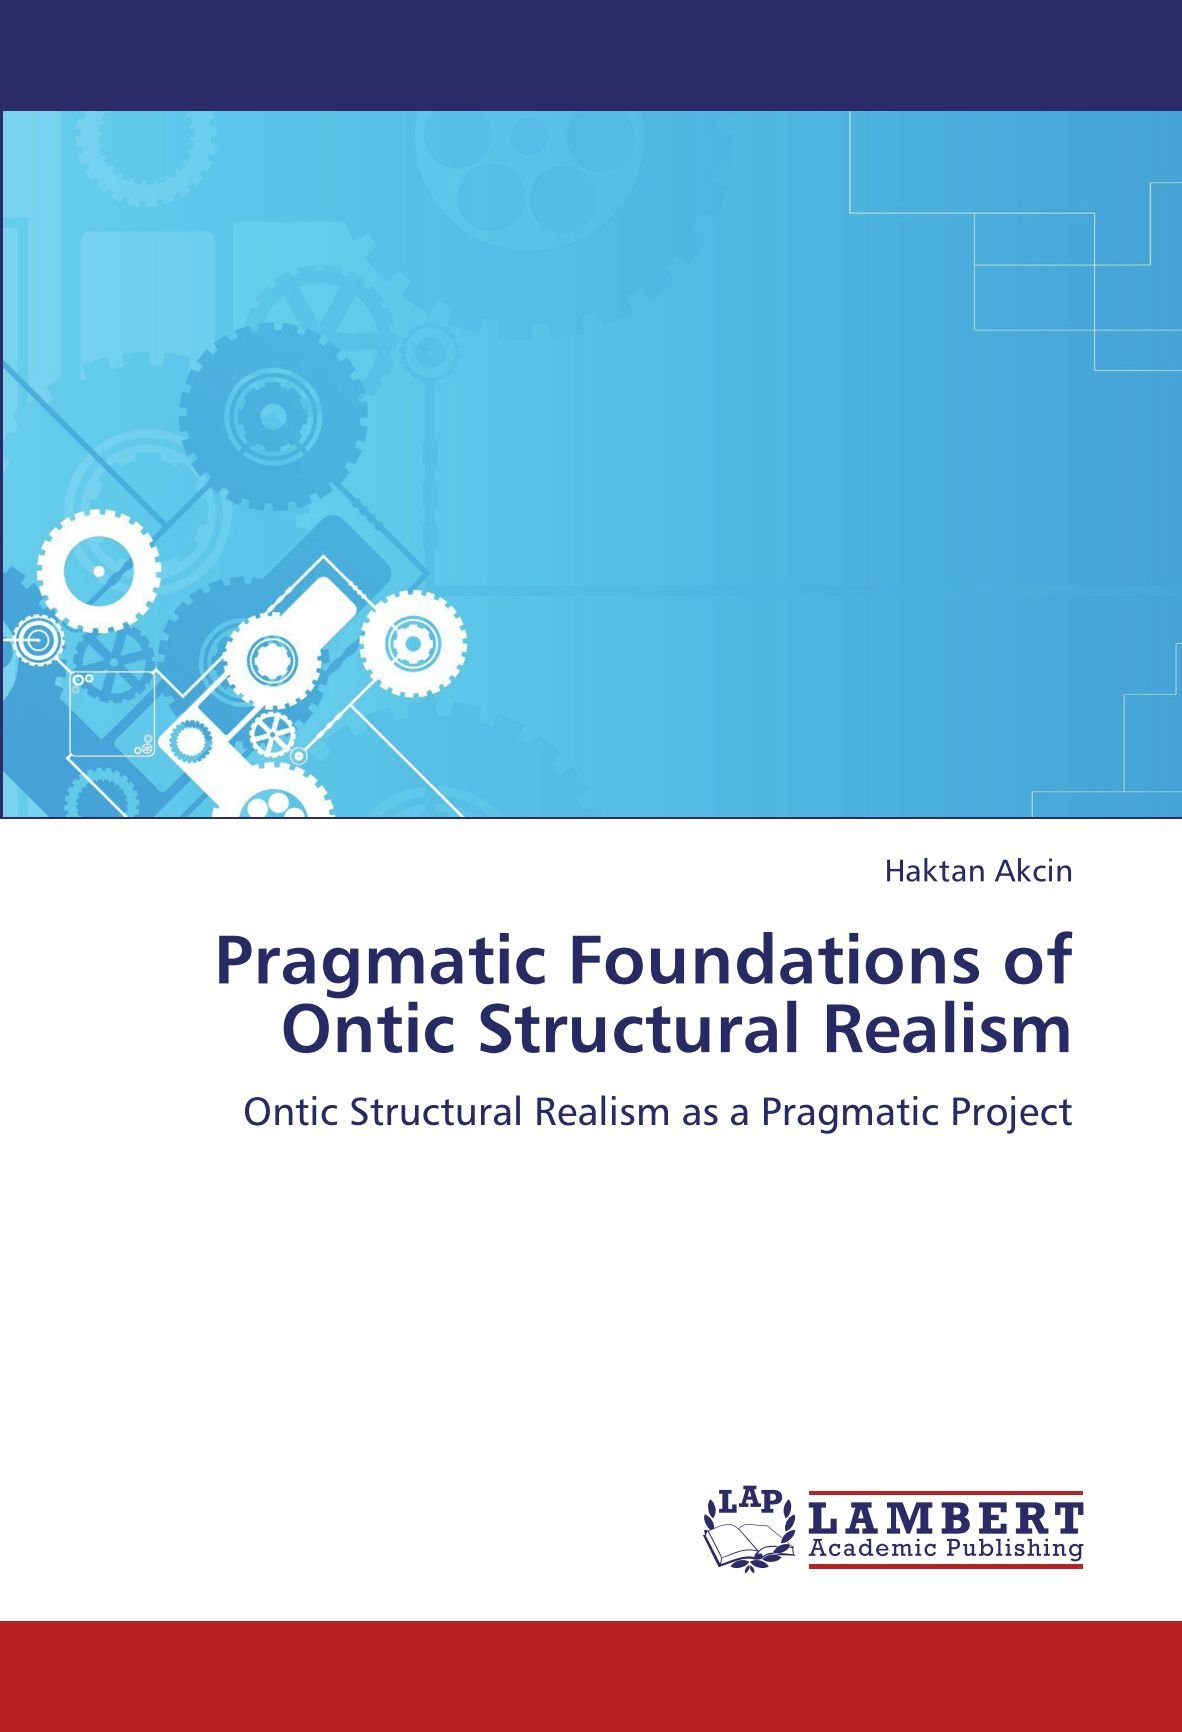 Download Pragmatic Foundations of Ontic Structural Realism: Ontic Structural Realism as a Pragmatic Project pdf